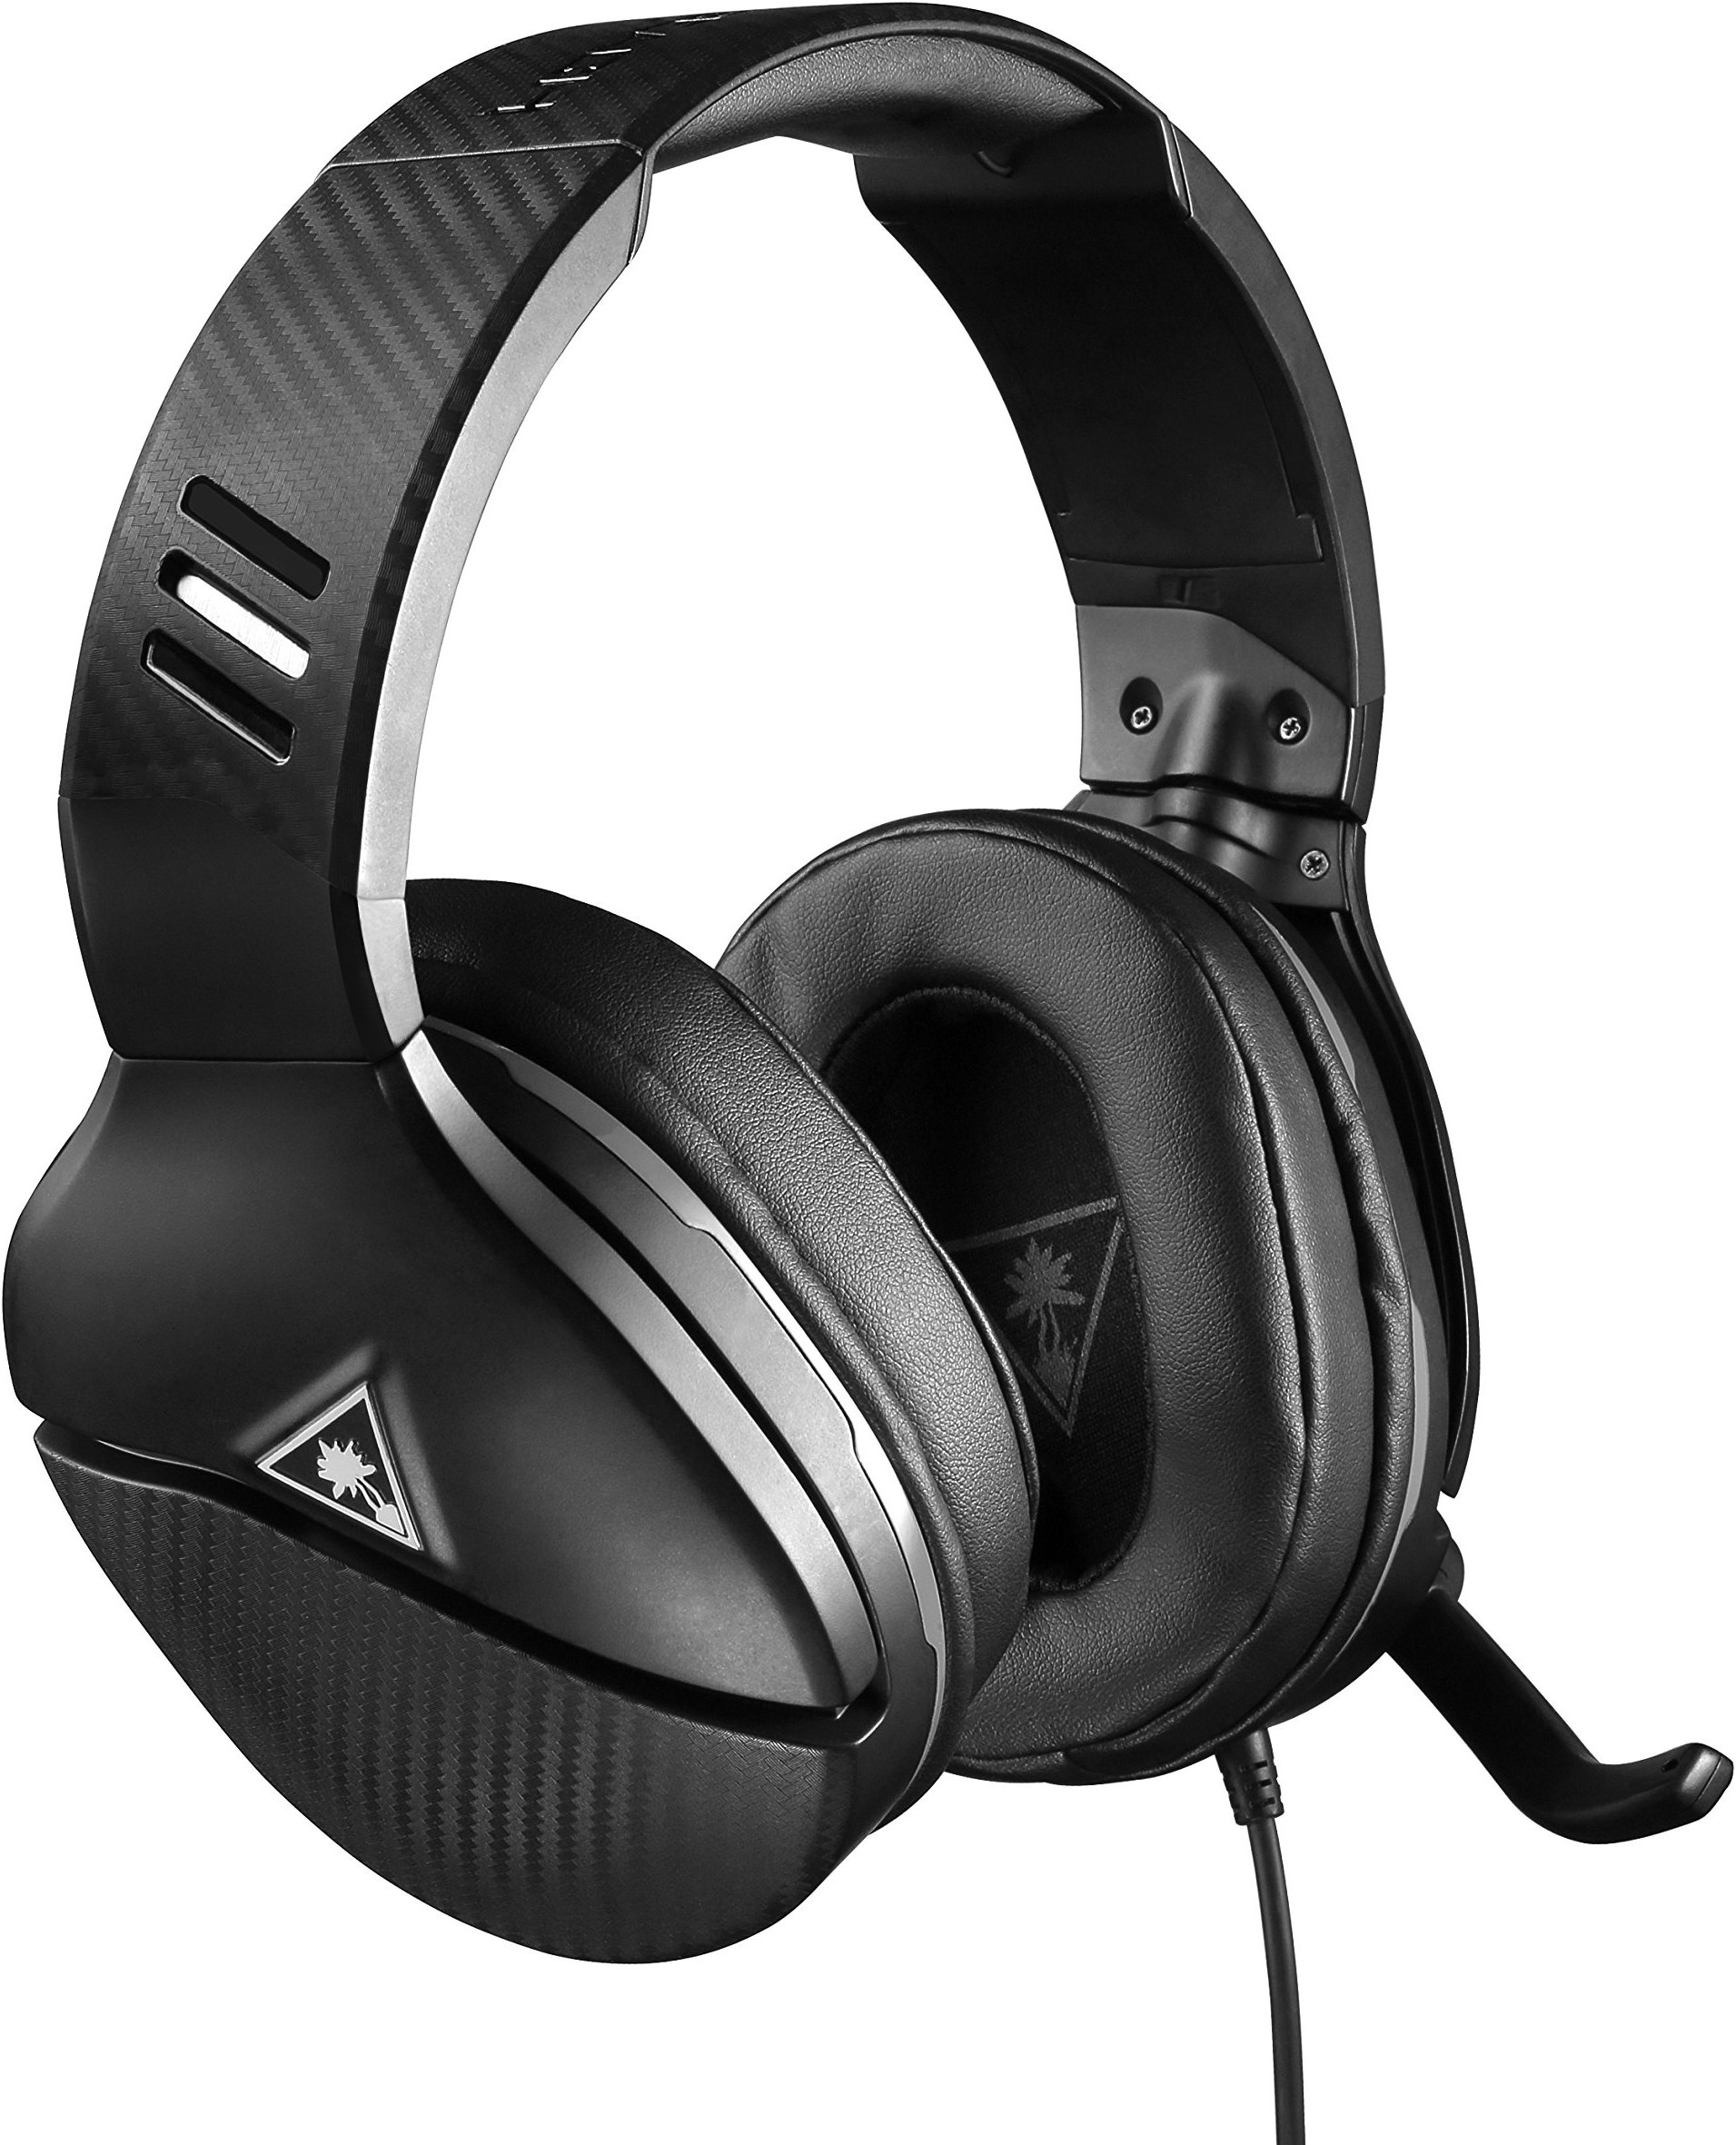 Turtle Beach Recon 200 Amplified Gaming Headset for Xbox One/Series X/S/PlayStation 4/5 - Black